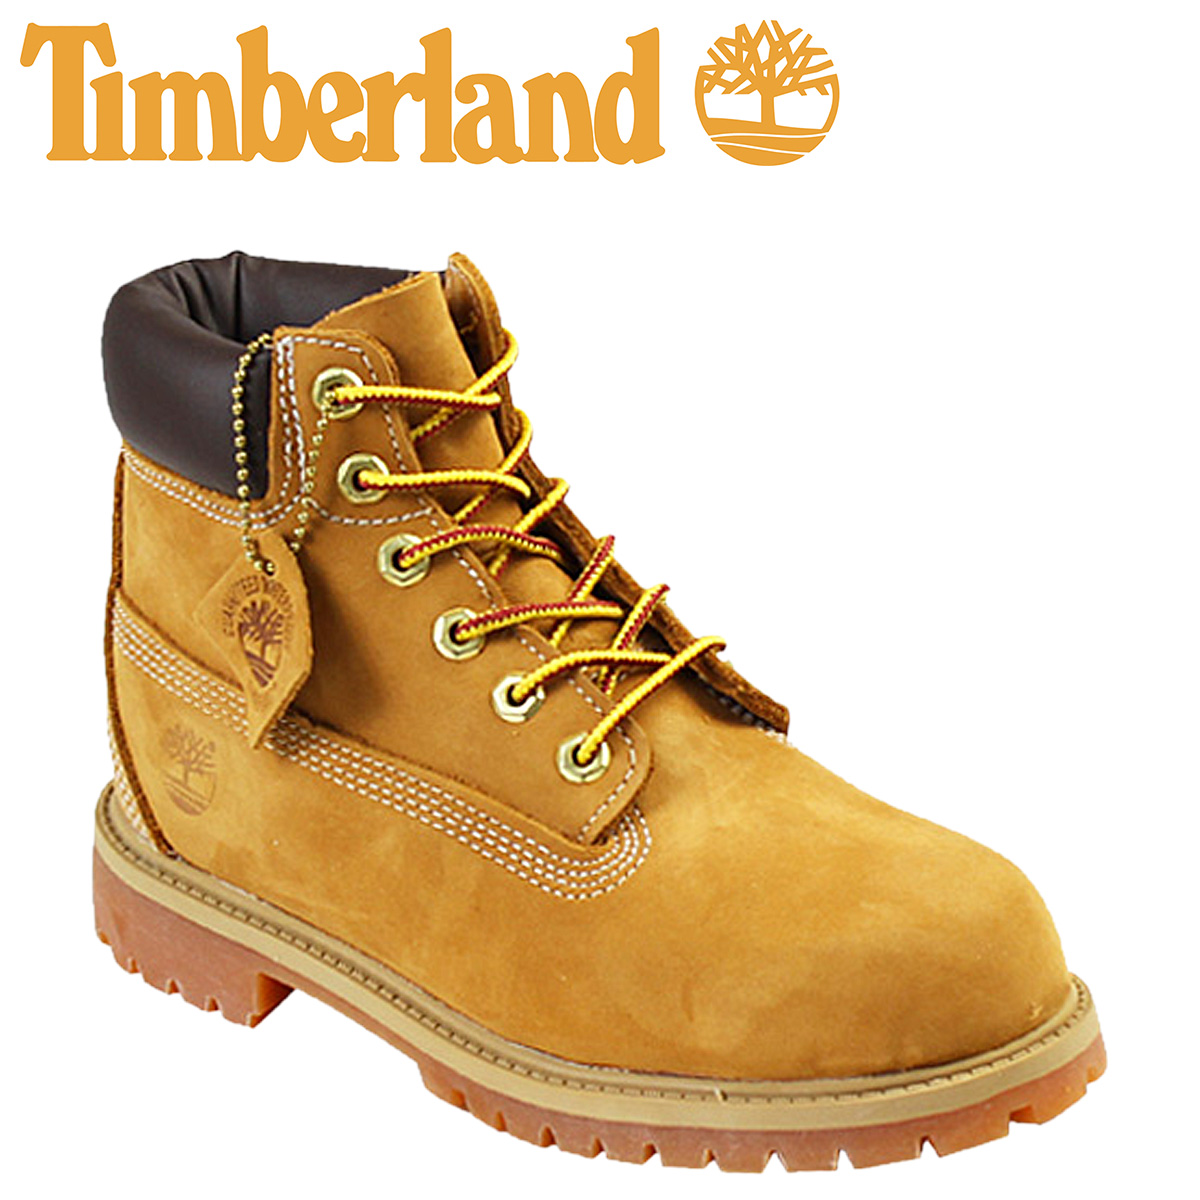 Whats up Sports   SOLD OUT  Timberland Timberland kids 6 inch classic  waterproof boots  wheat  YOUTH CLASSIC WATERPROOF BOOT nubuck junior kids  women s GS ... debee4820